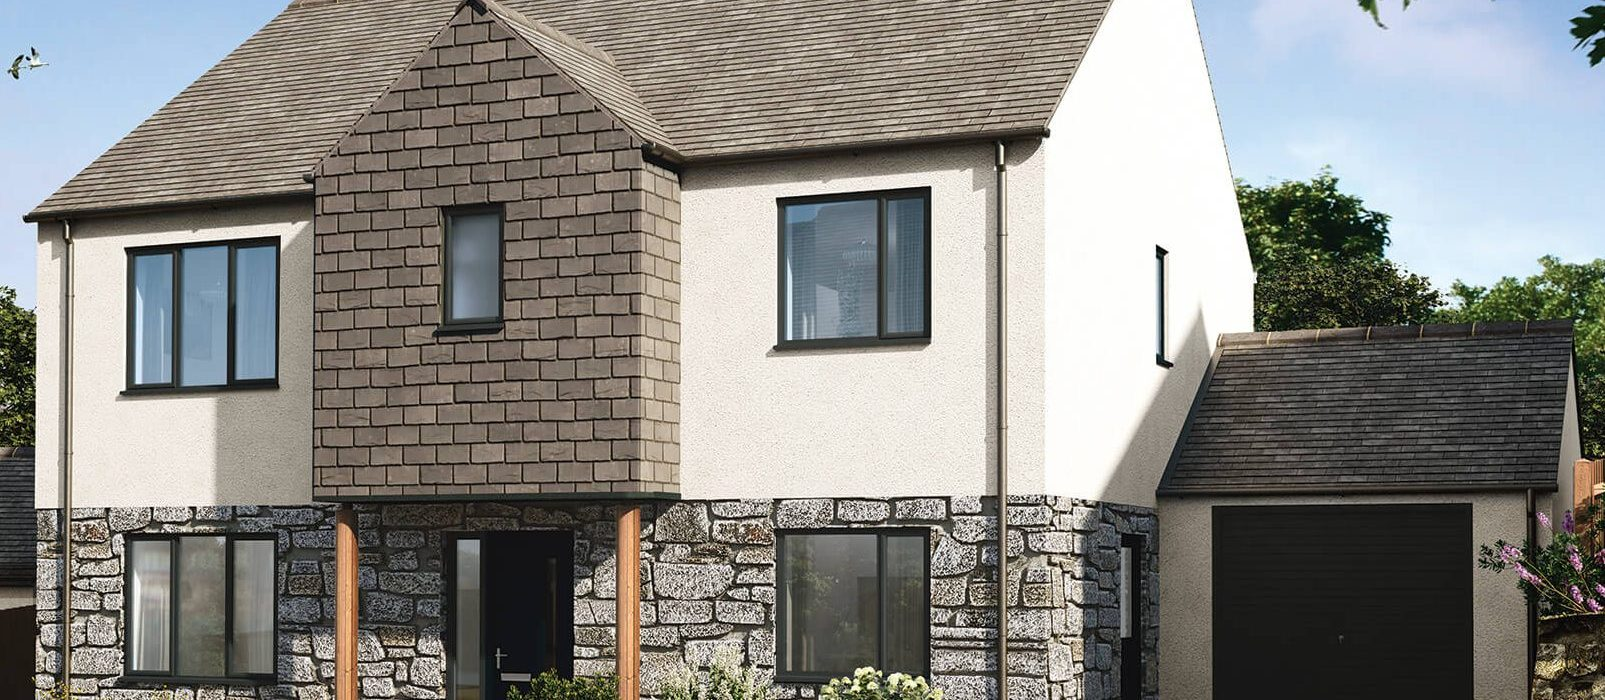 4 bedroom home HalwynMeadows Crantock whiteandgranite.jpeg 1 e1554462176109 1605x700 - House 51 - 4 Bedroom Detached Home